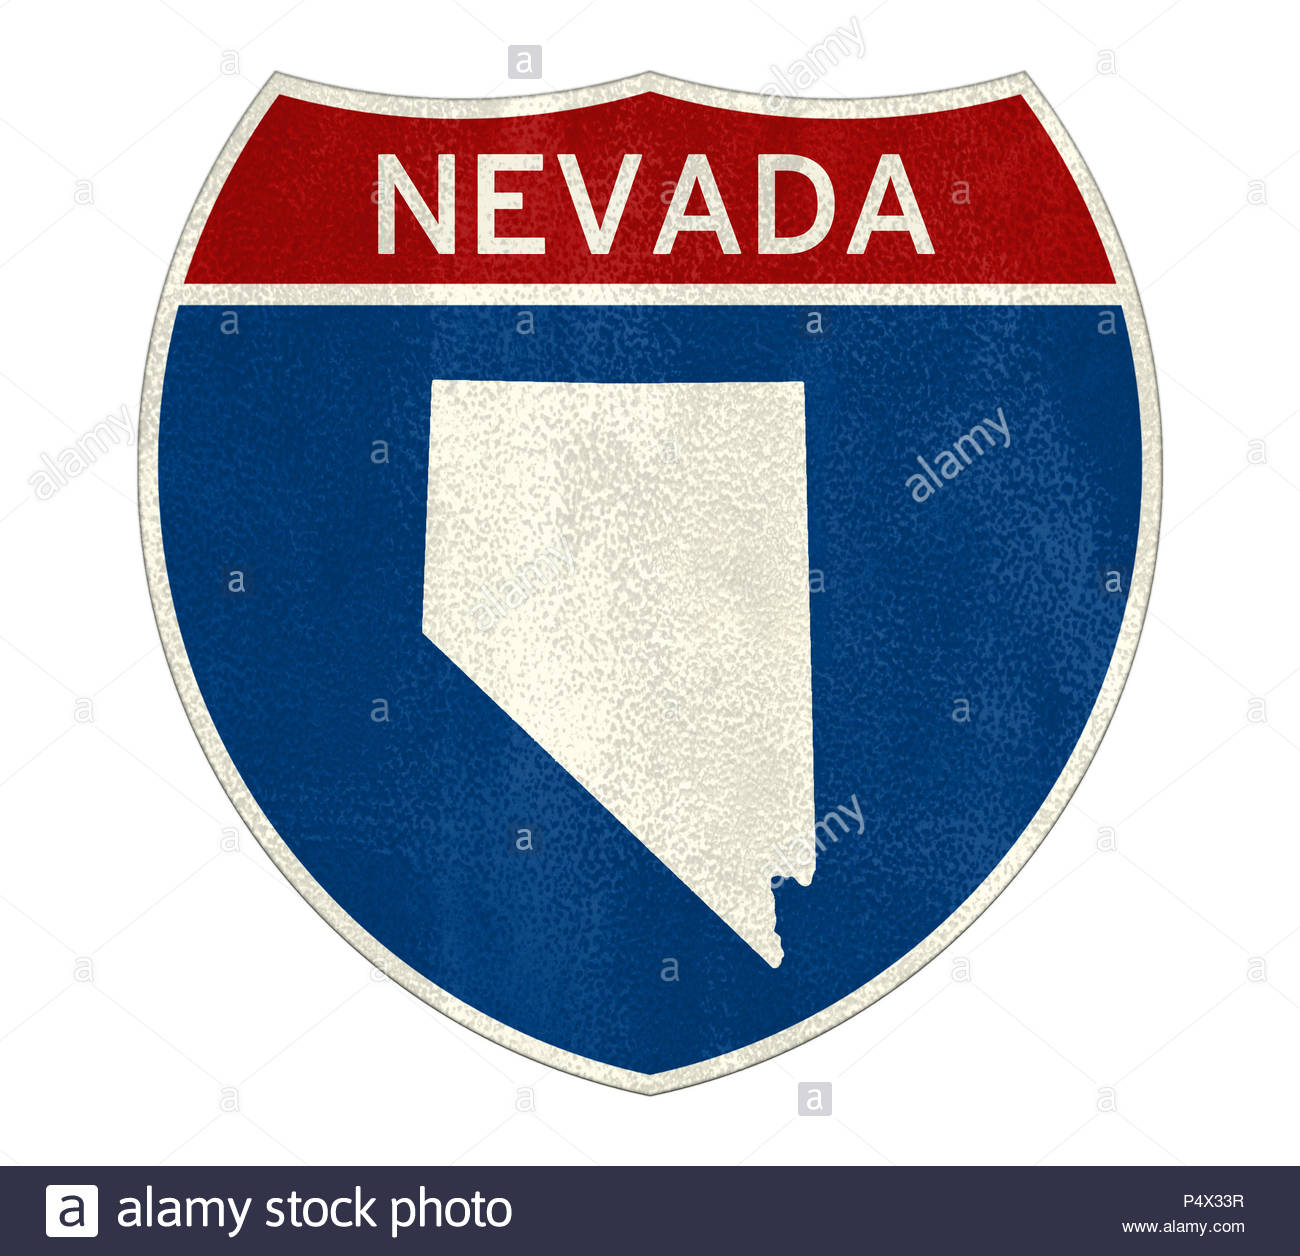 Nevada State Interstate road sign - Stock Image